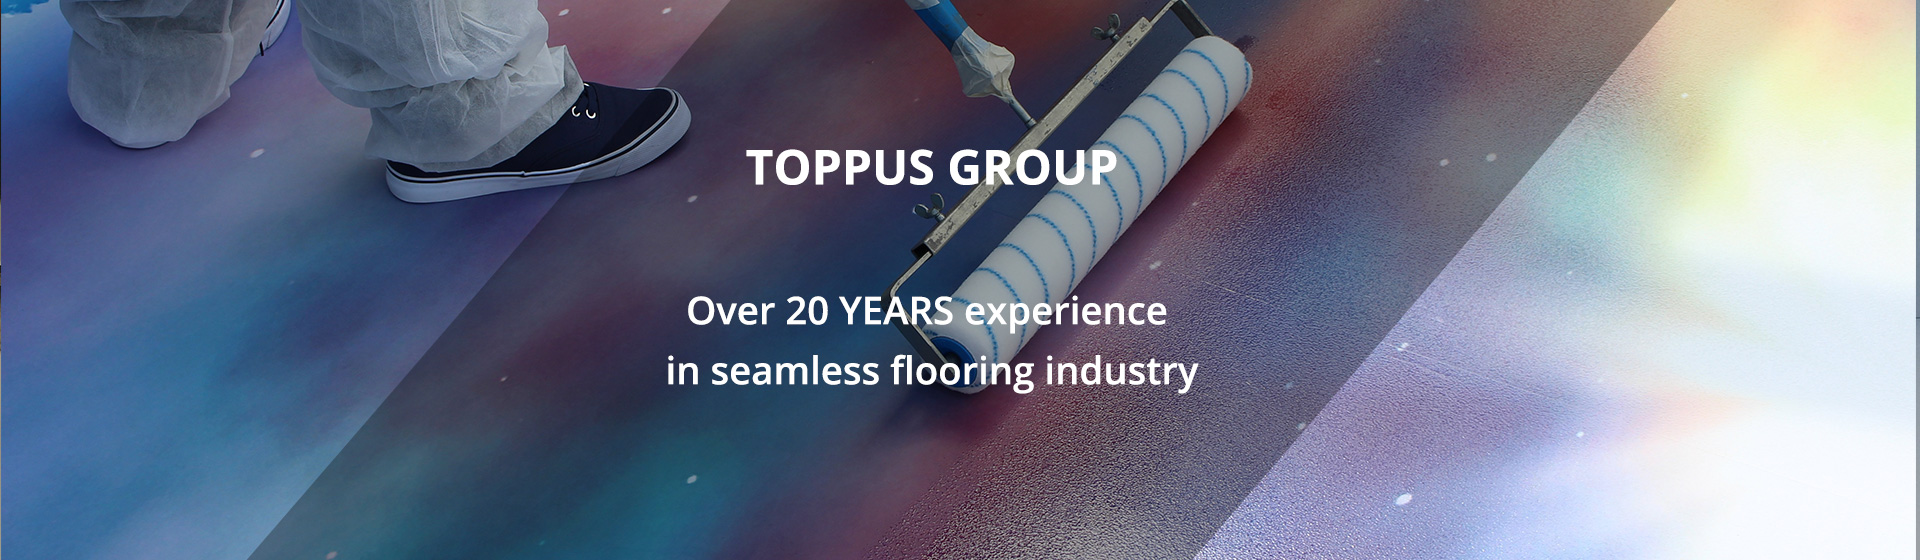 Over 20 YEARS experience in seamless flooring industry